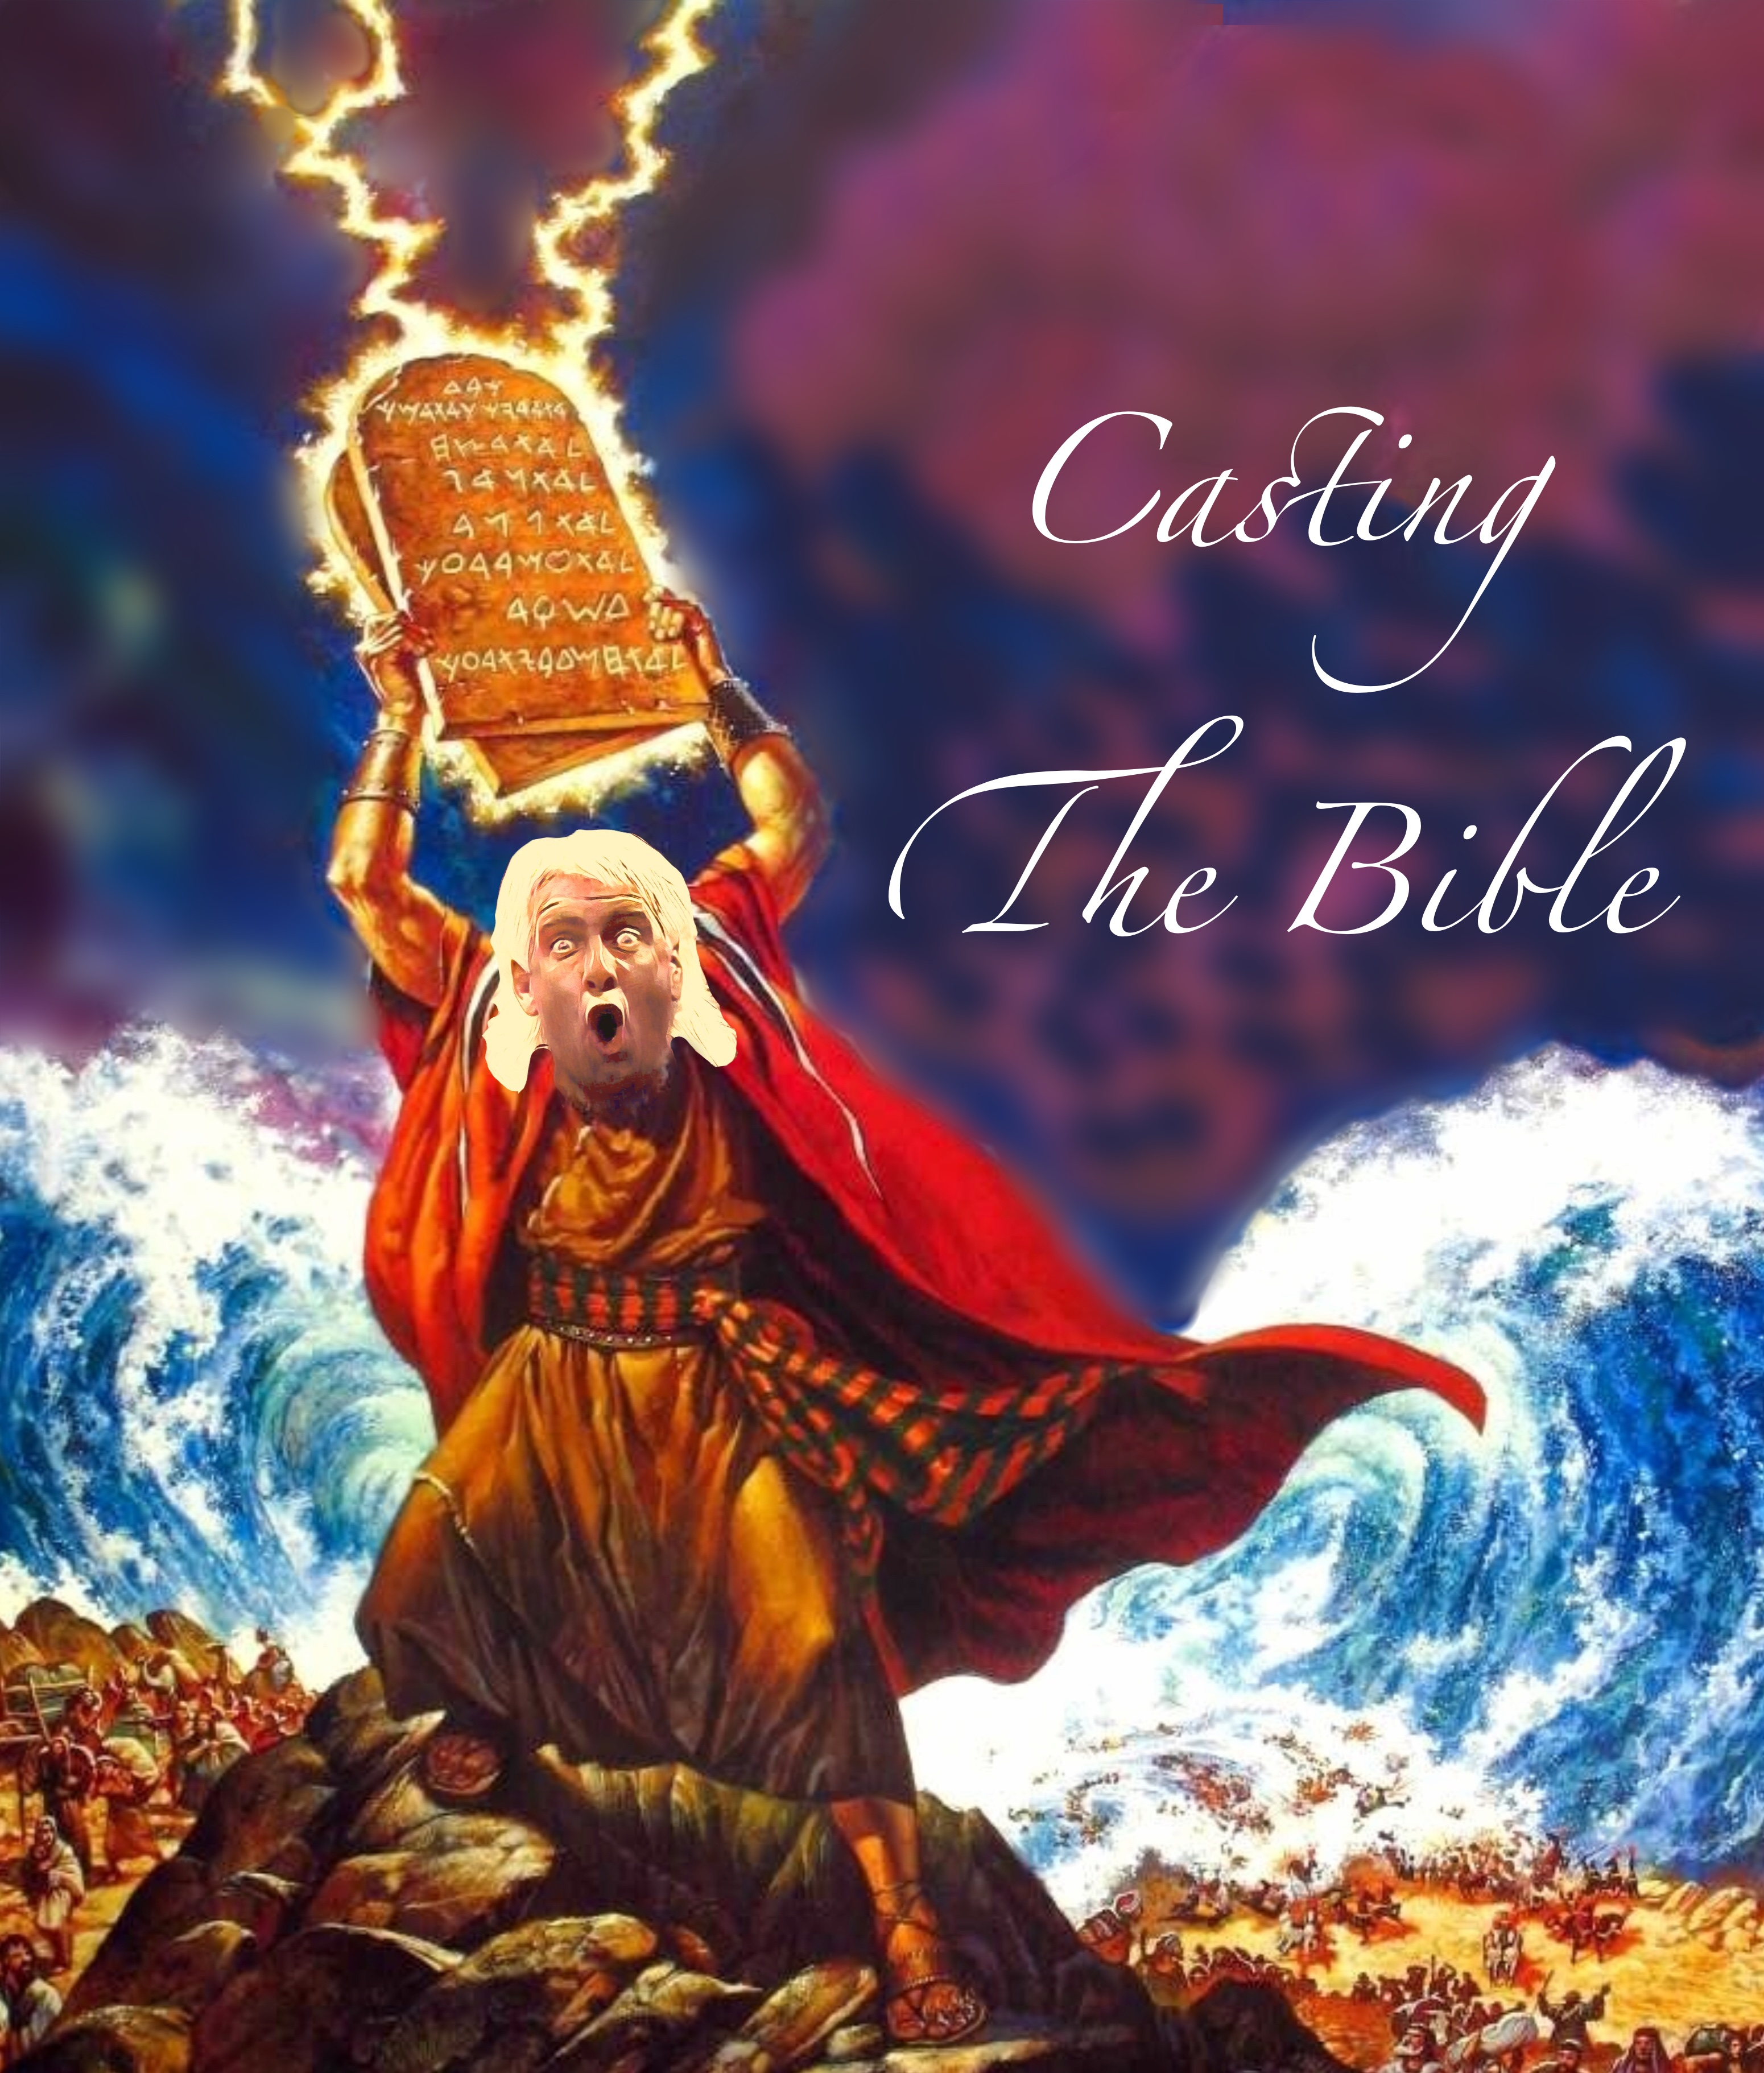 67-Casting The Bible